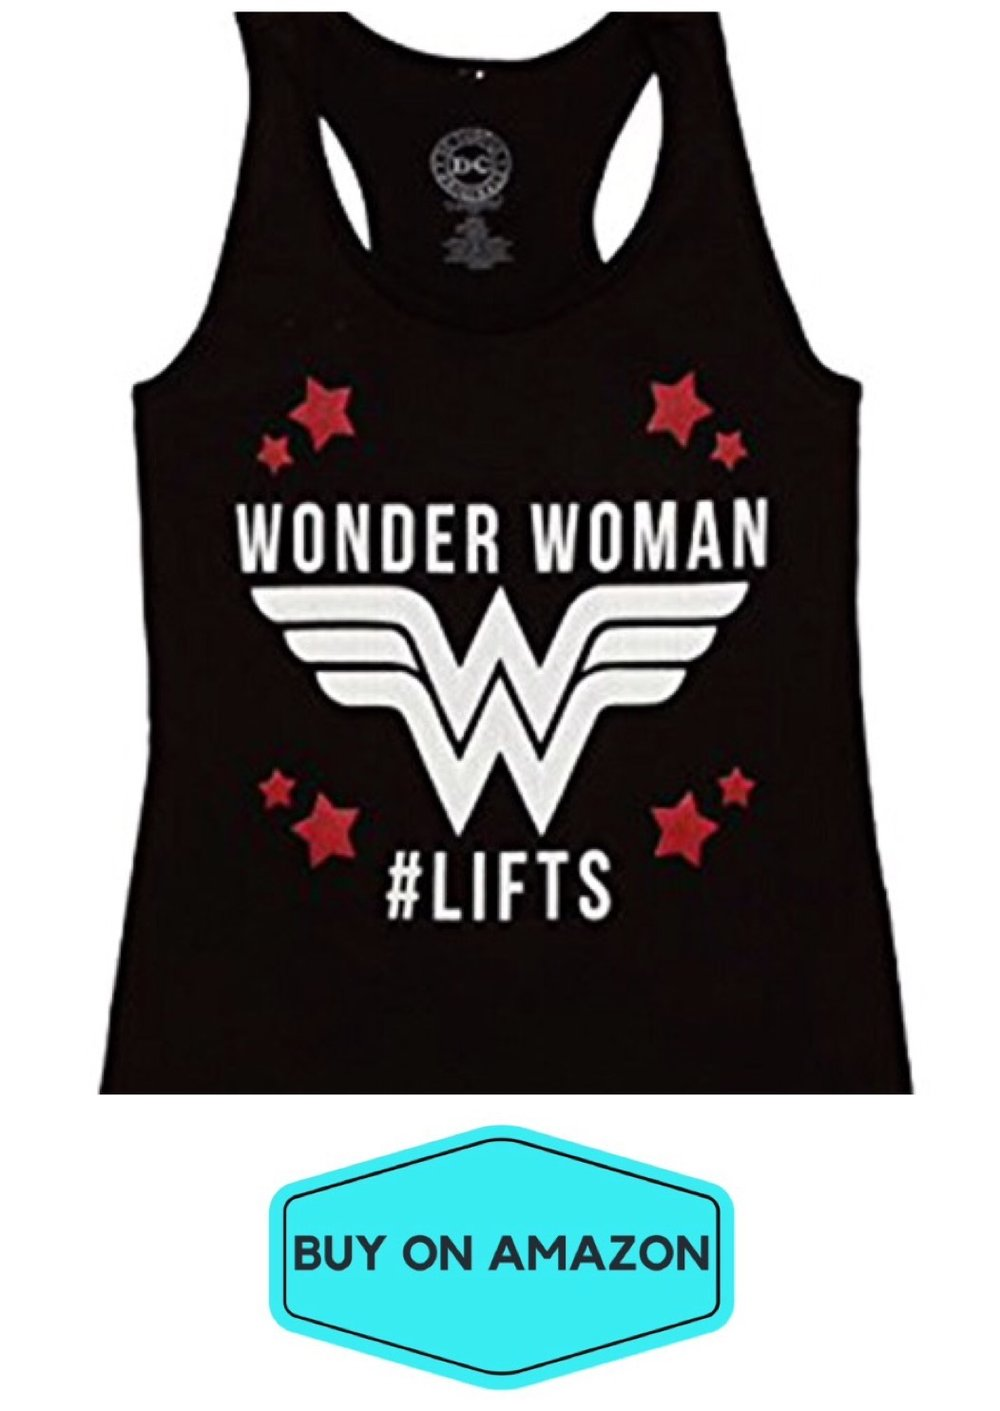 Wonder Woman Lifts Tank